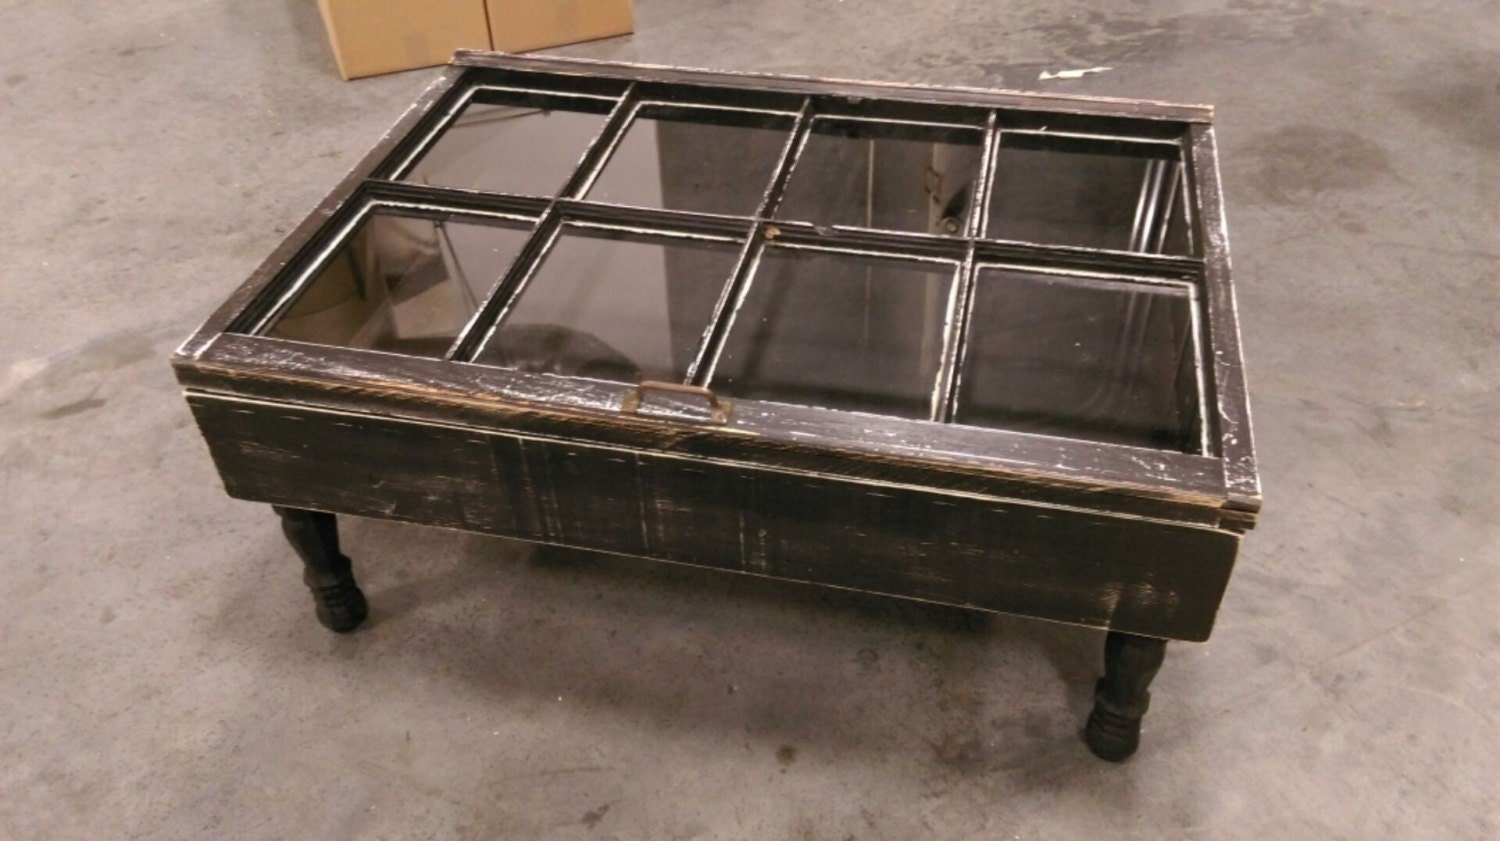 Design Rustic Coffee Table on sale rustic coffee table shadow box table